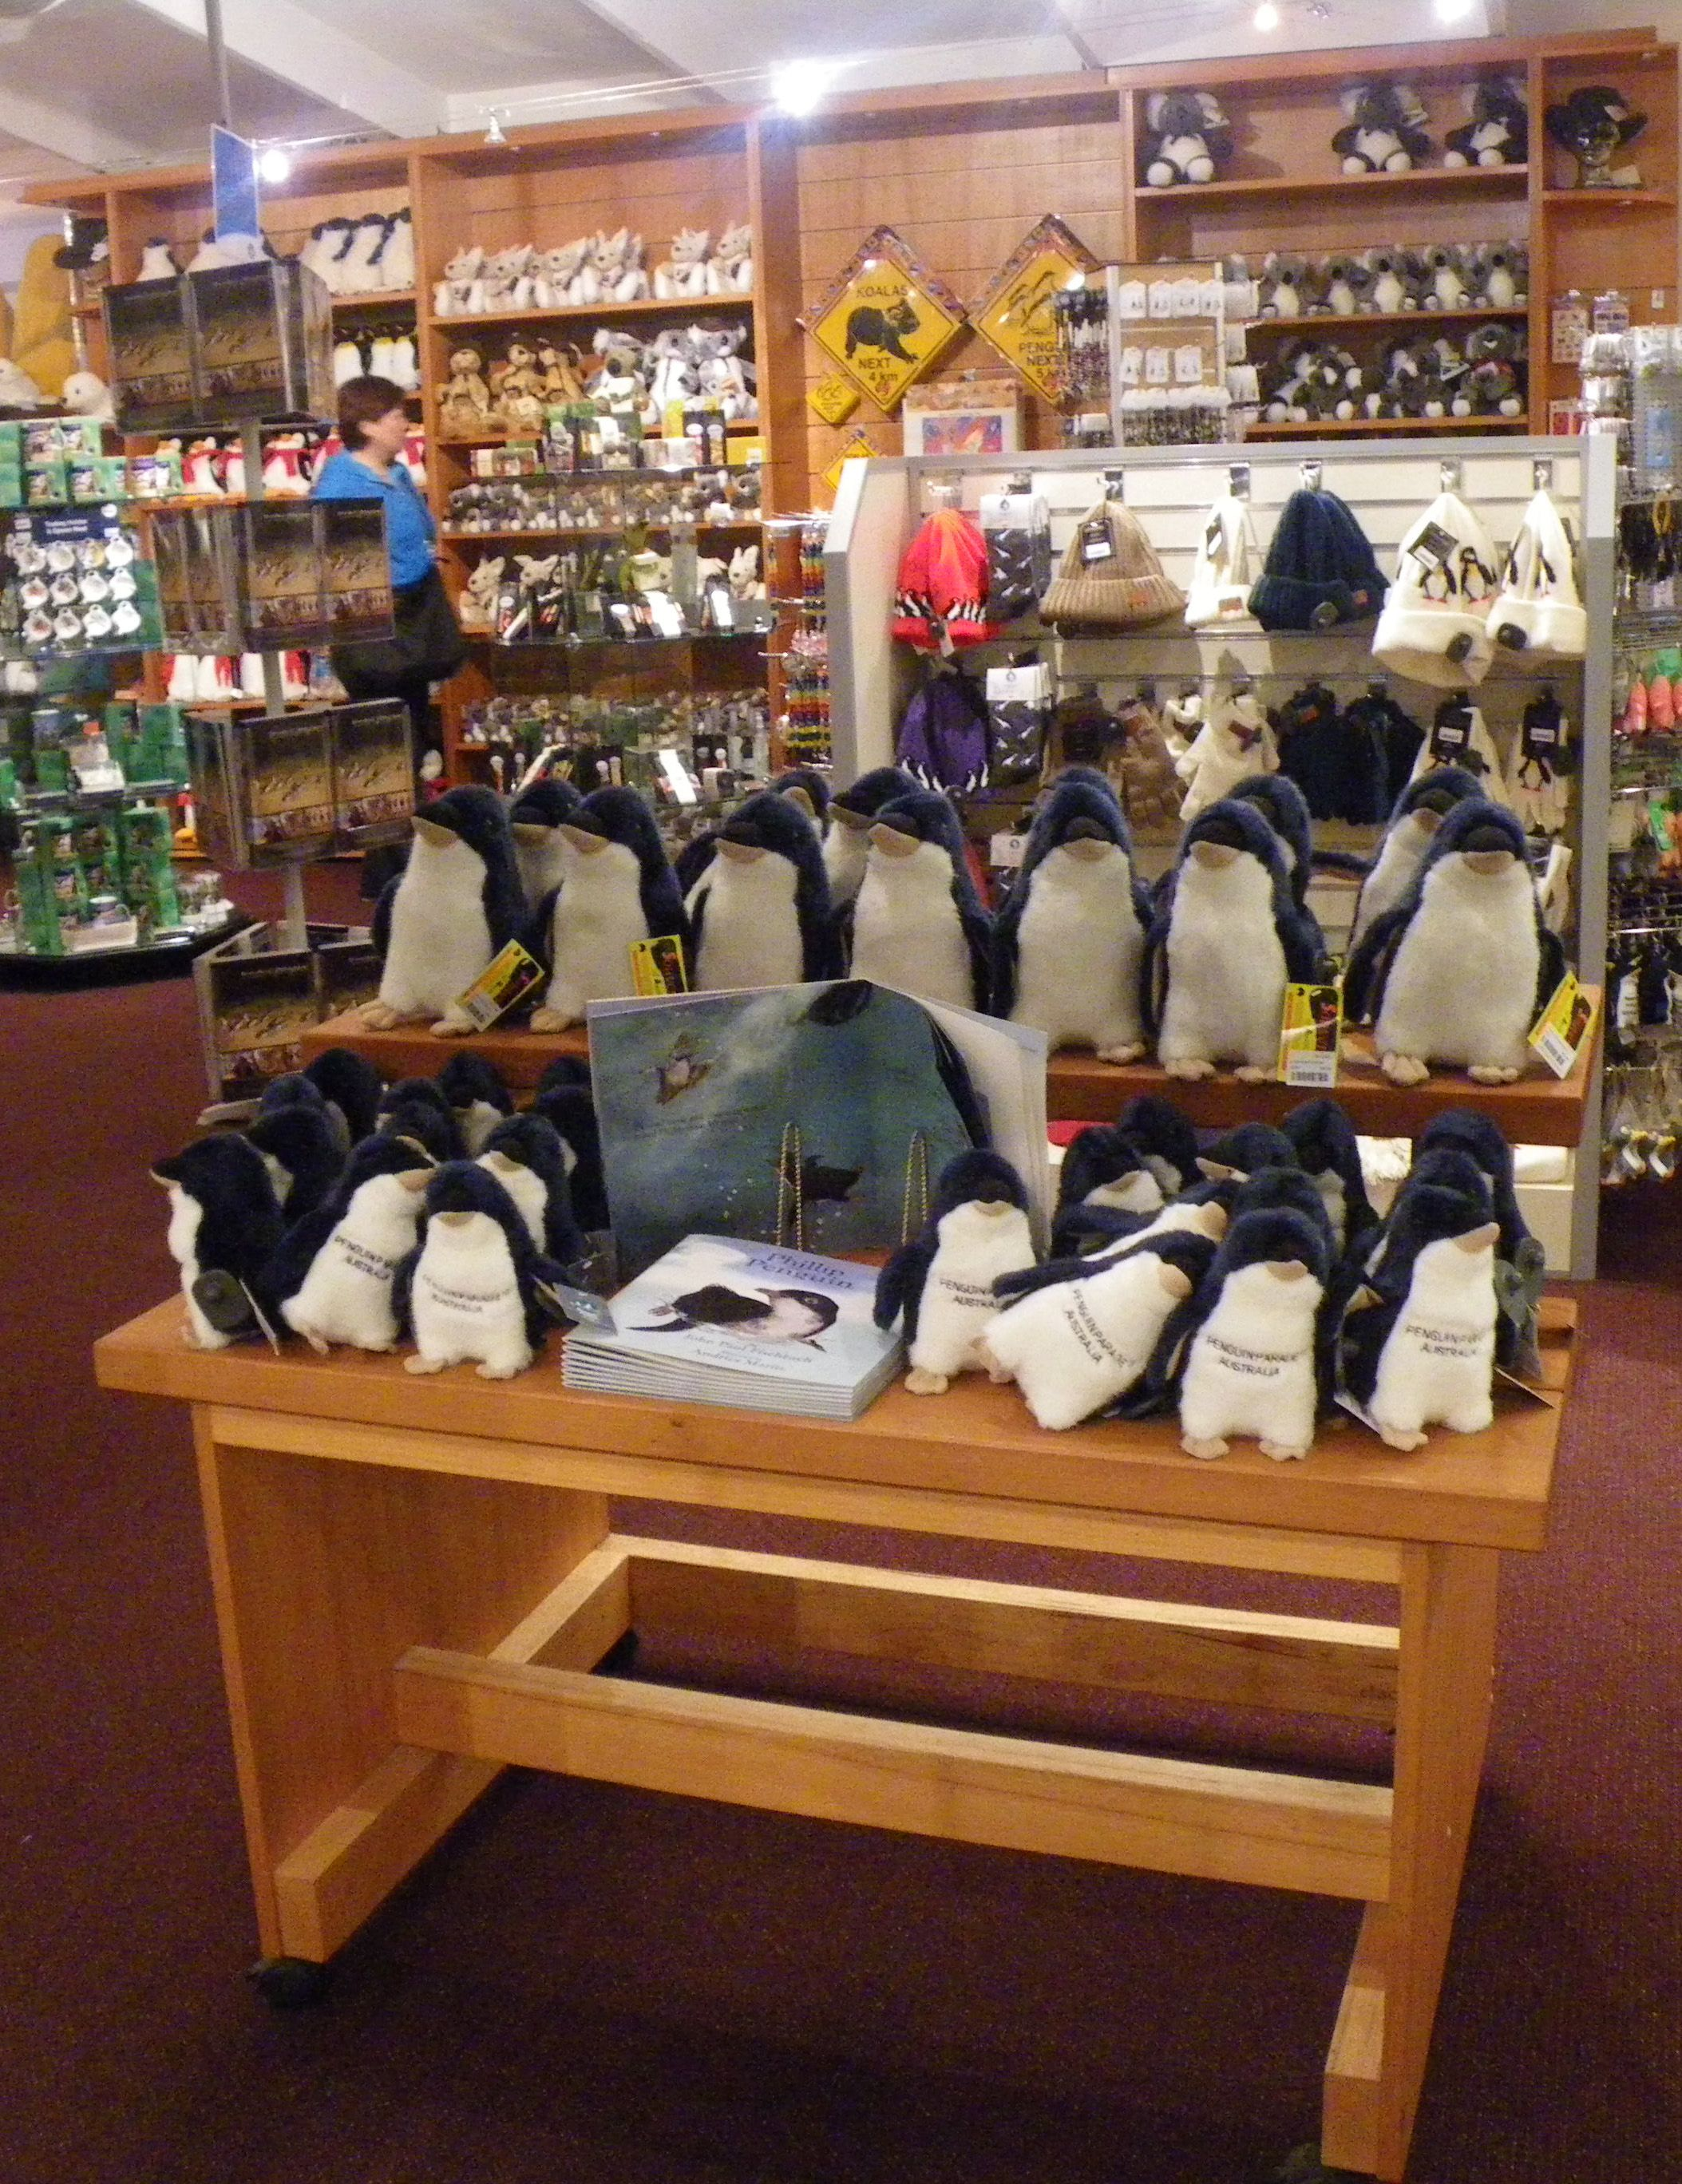 The Phillip Island Penguin Charade | Away Together